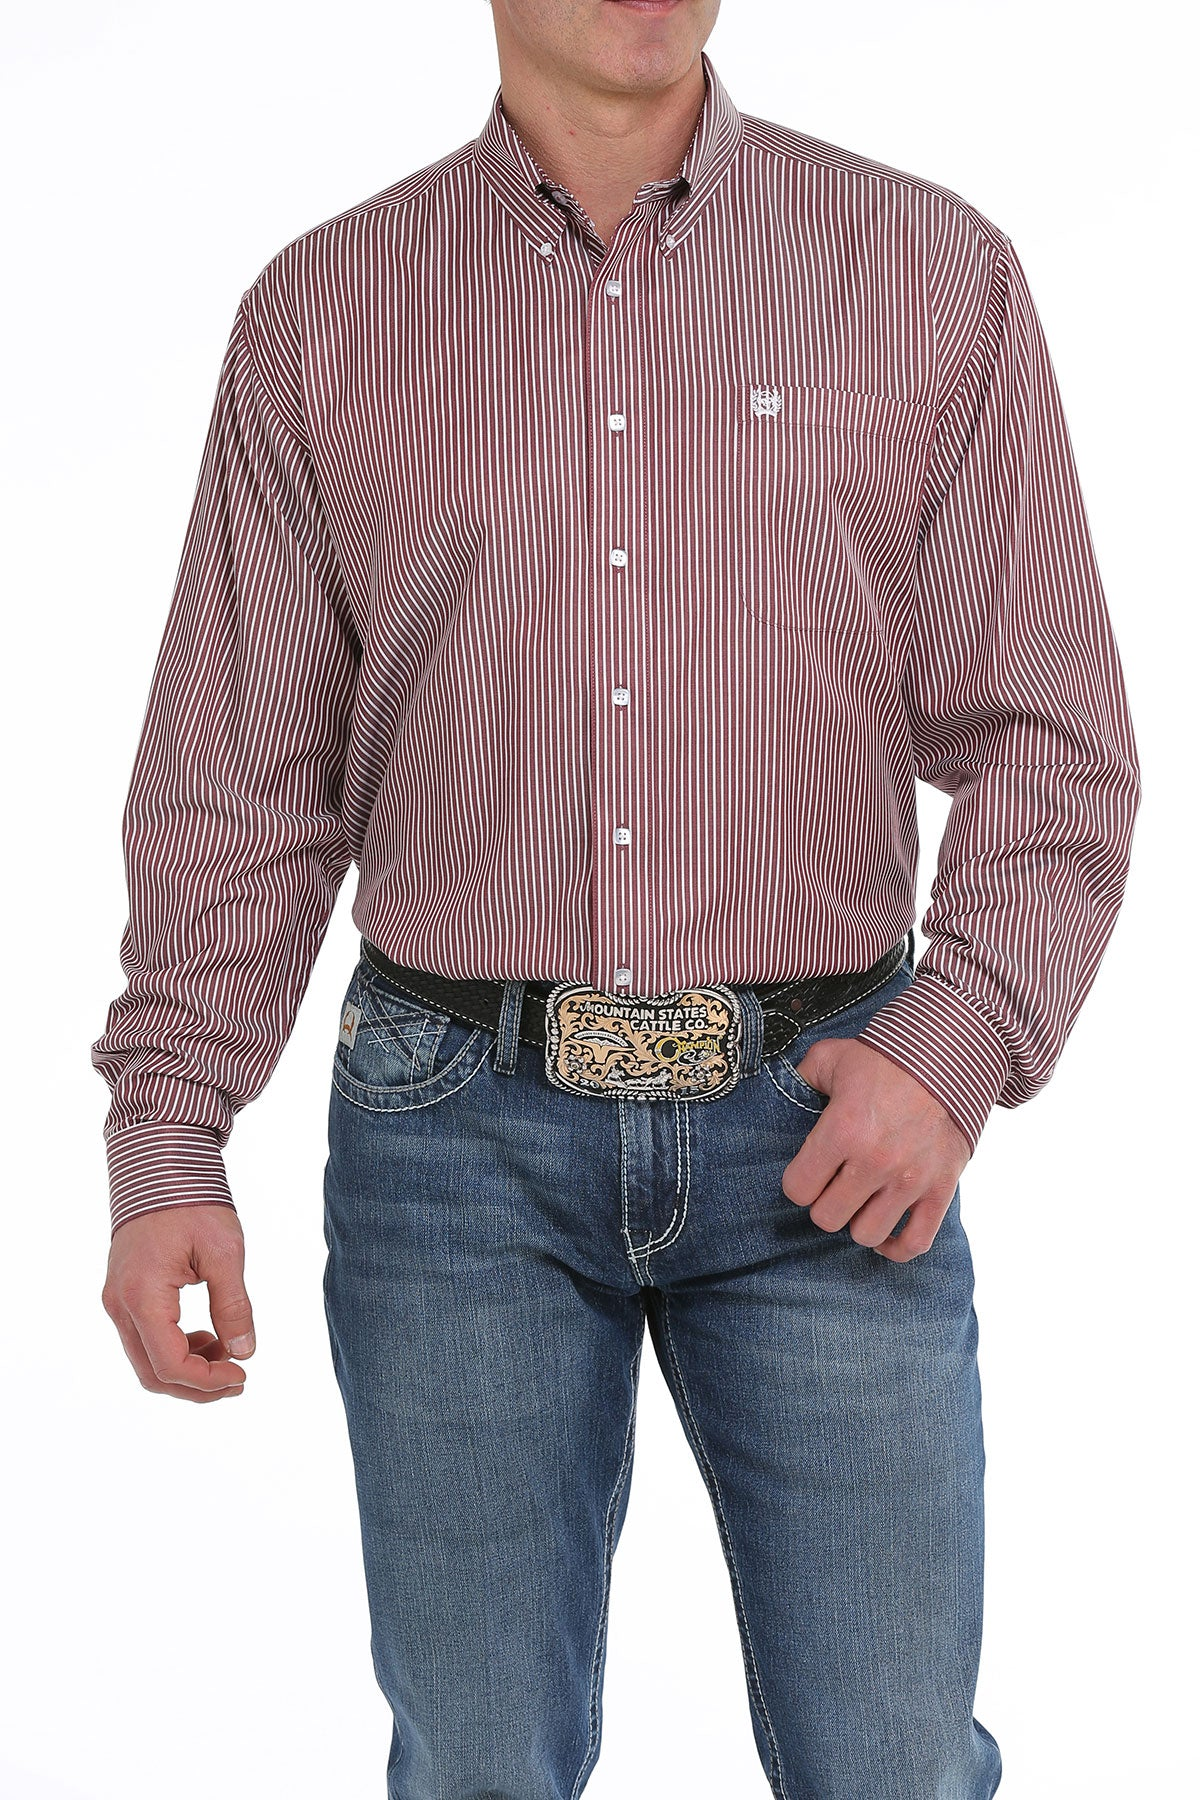 Cinch Burgundy Stripe Men's Button Down